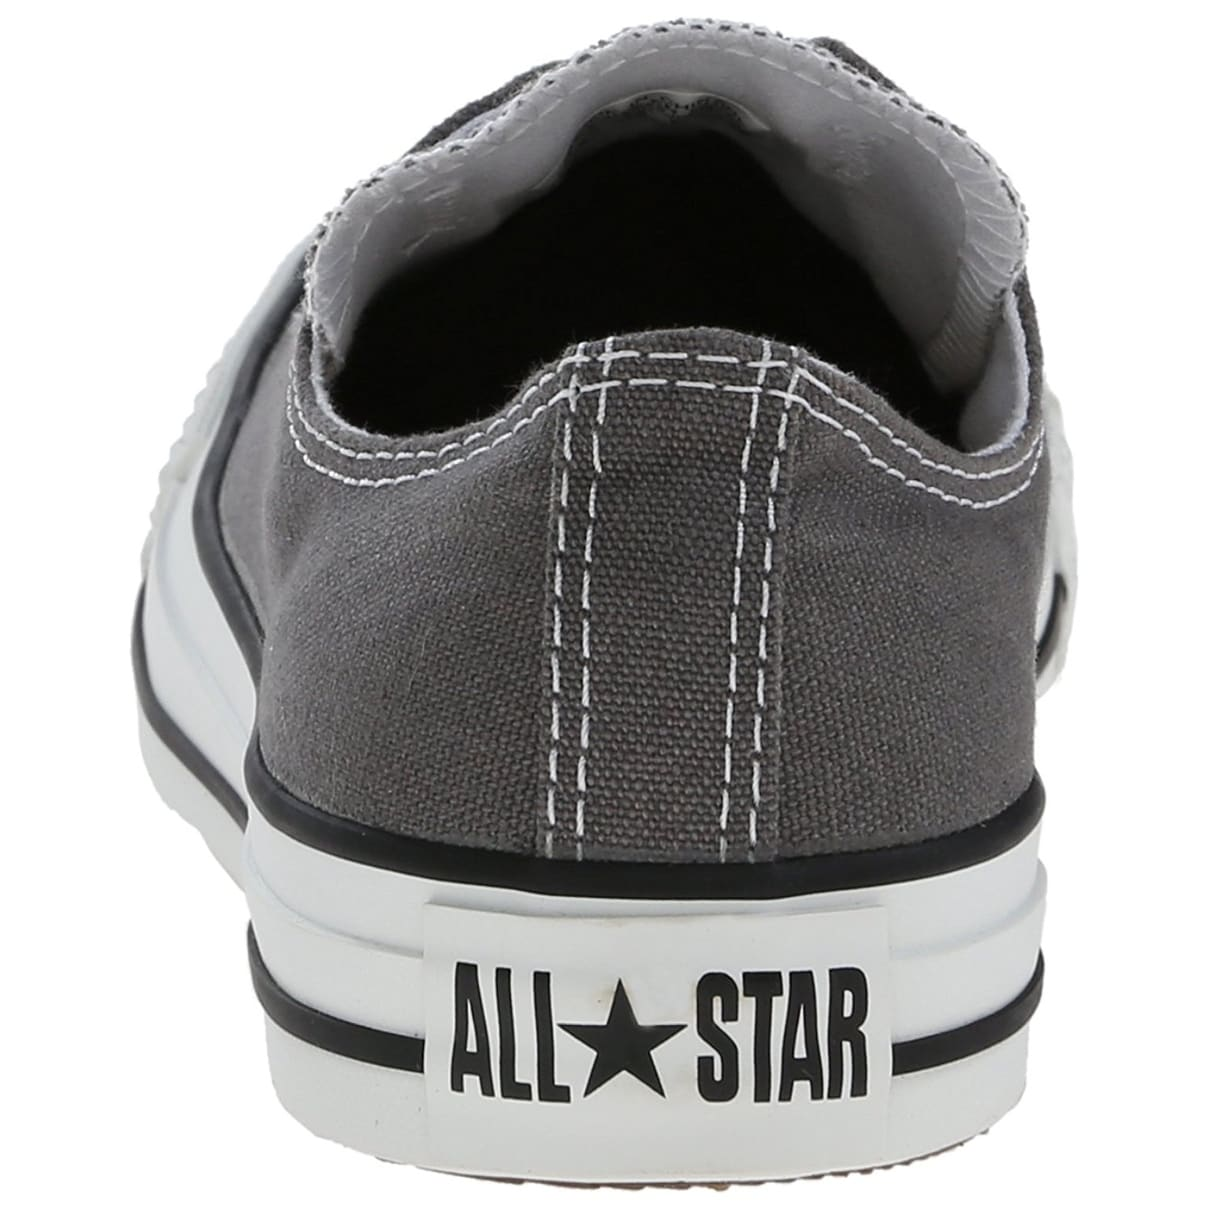 9cda08bd0495d5 Shop Converse All Star Specialty OX Charcoal Womens Trainers - Free  Shipping Today - Overstock - 18278926